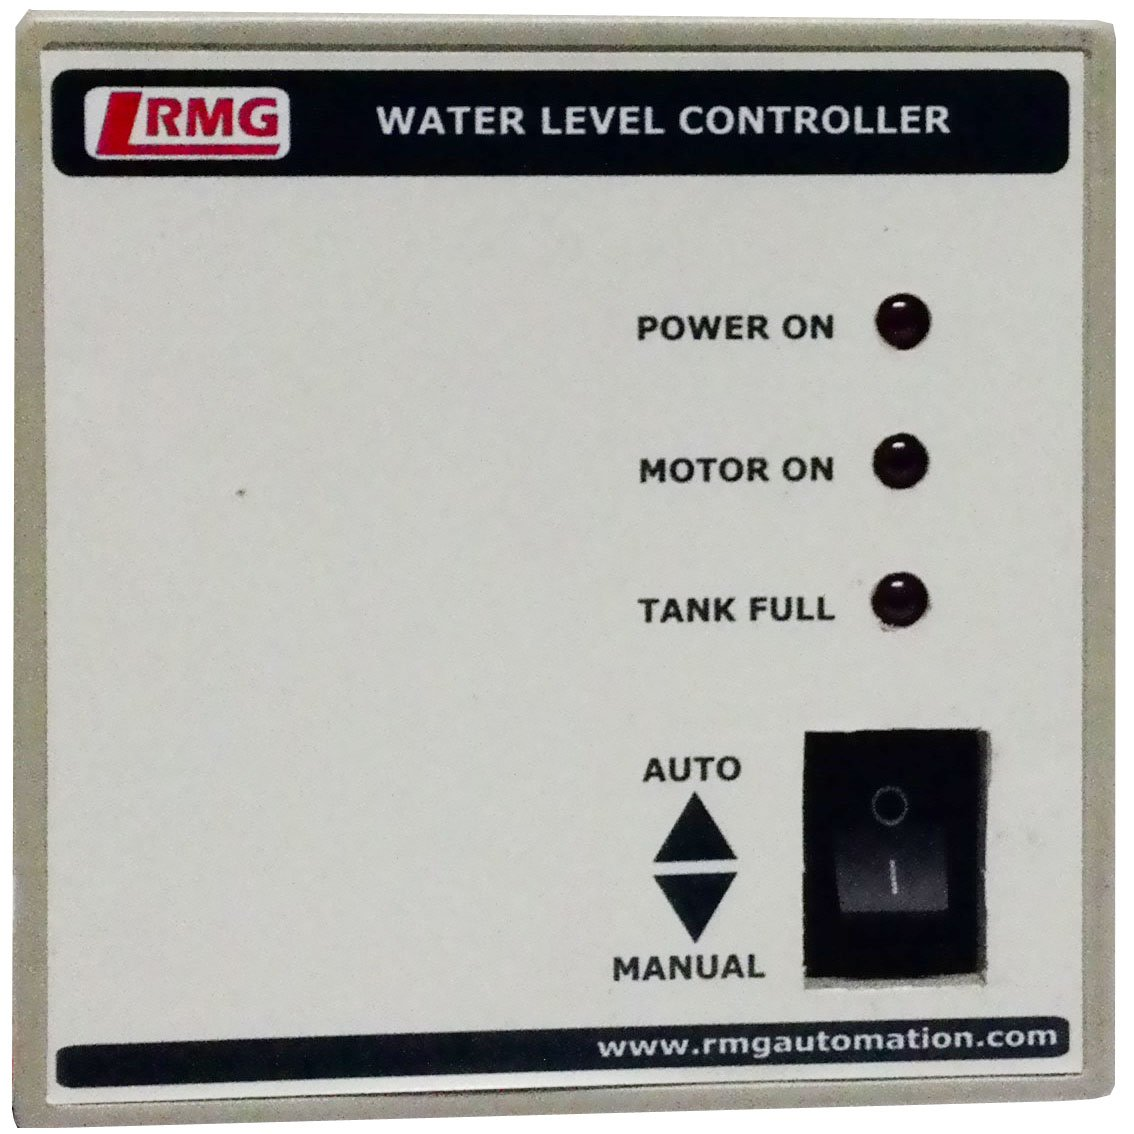 Rmg Automatic Water Level Controller For Motor Pump Operated By Detector Circuit Diagram Switch Mcb Upto 15 Hp Tank Only Home Kitchen